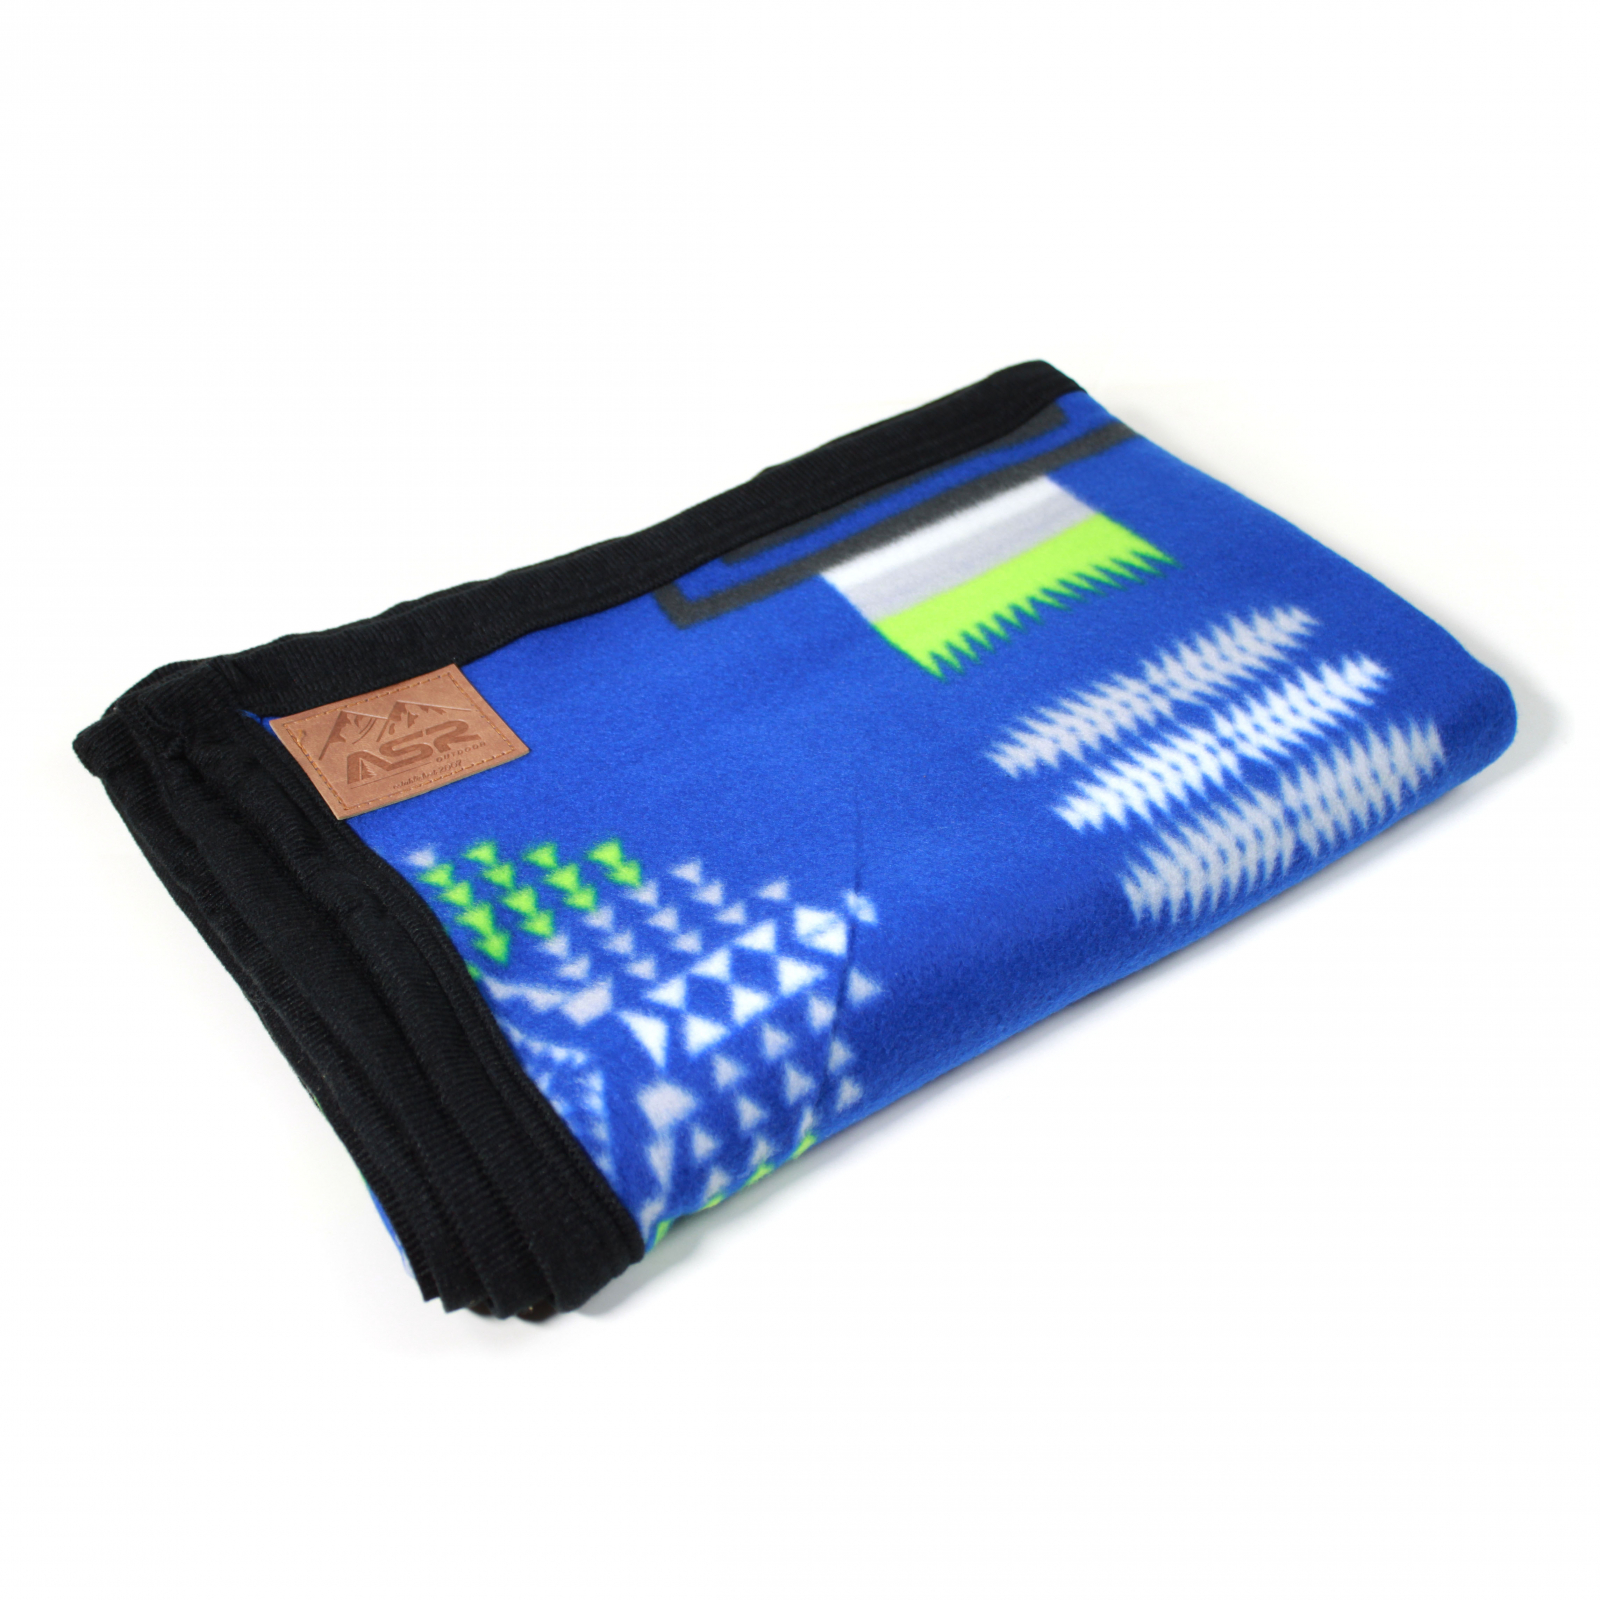 ASR Outdoor Southwest Style Fleece Blanket Full Blue Green